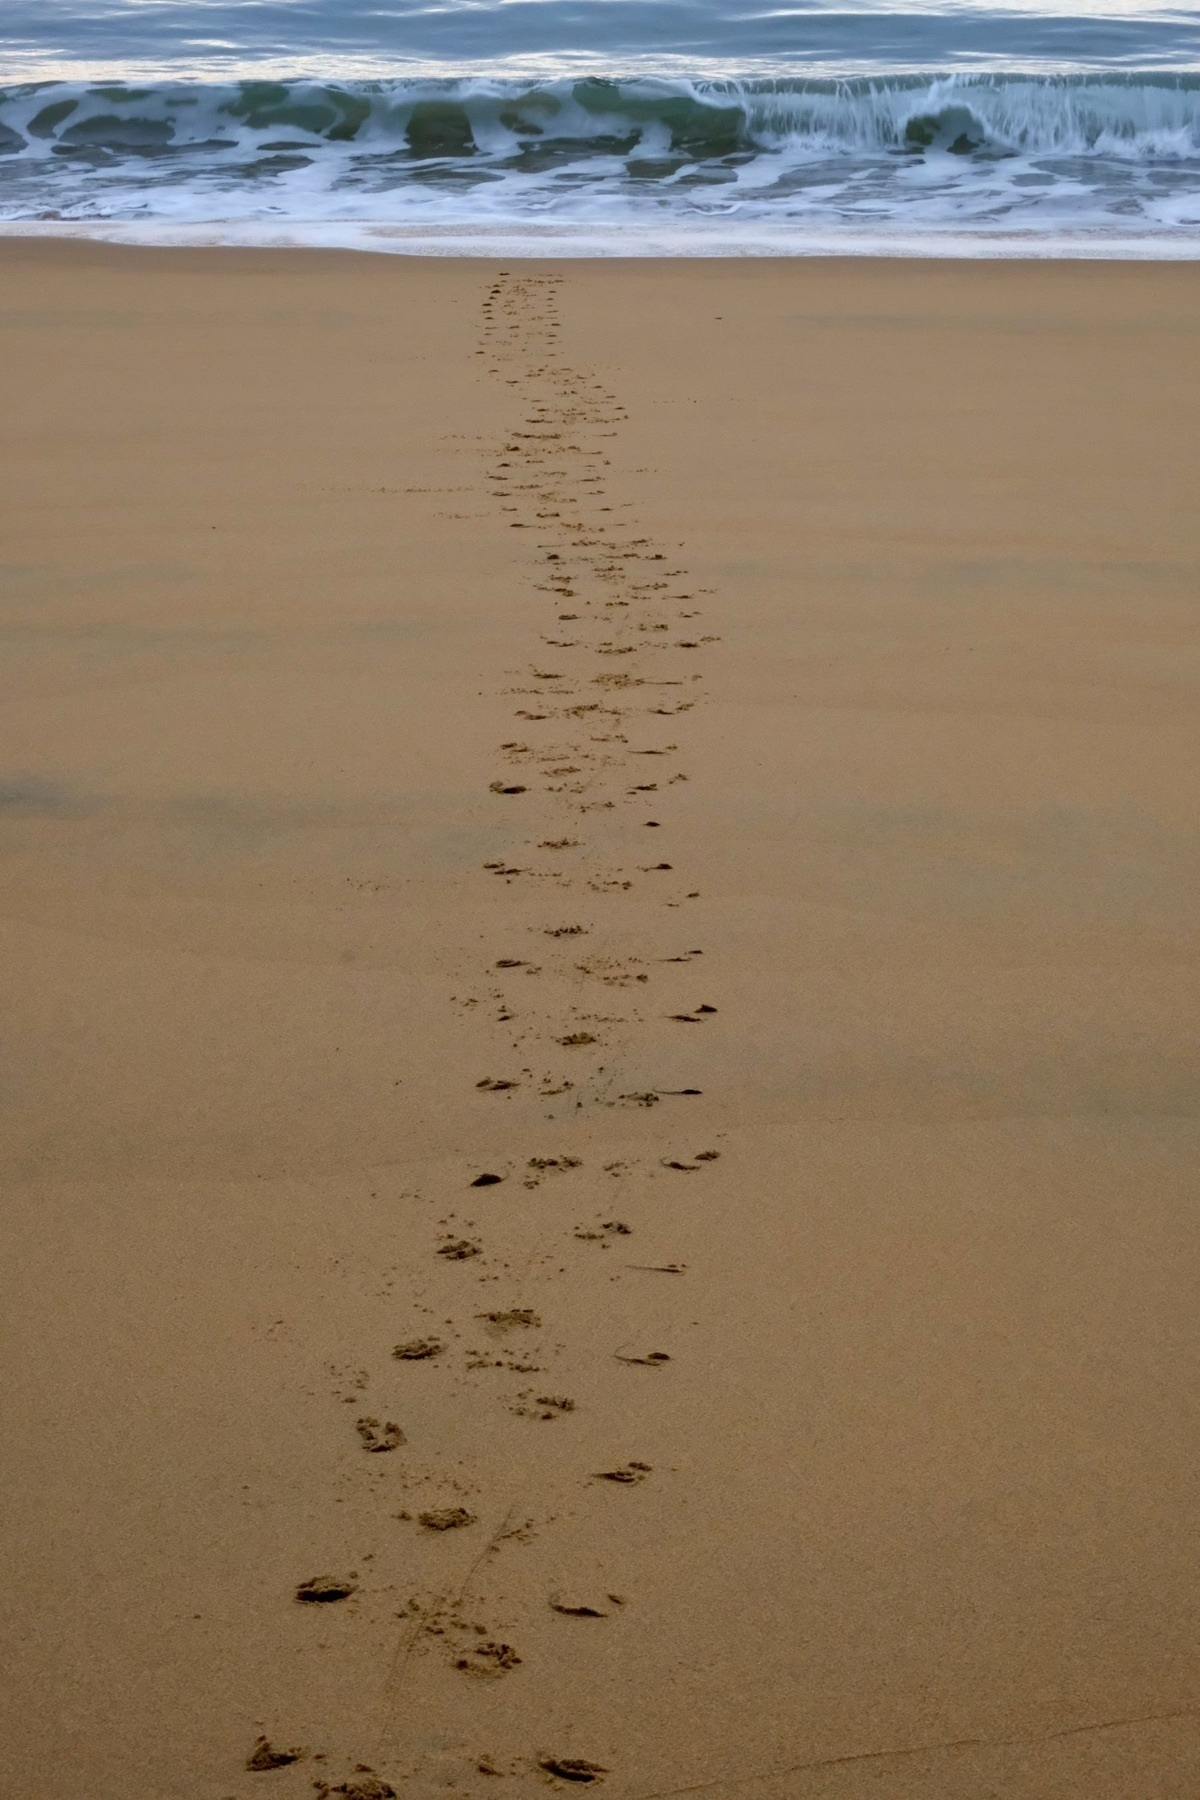 Track from a penguin crossing the beach.